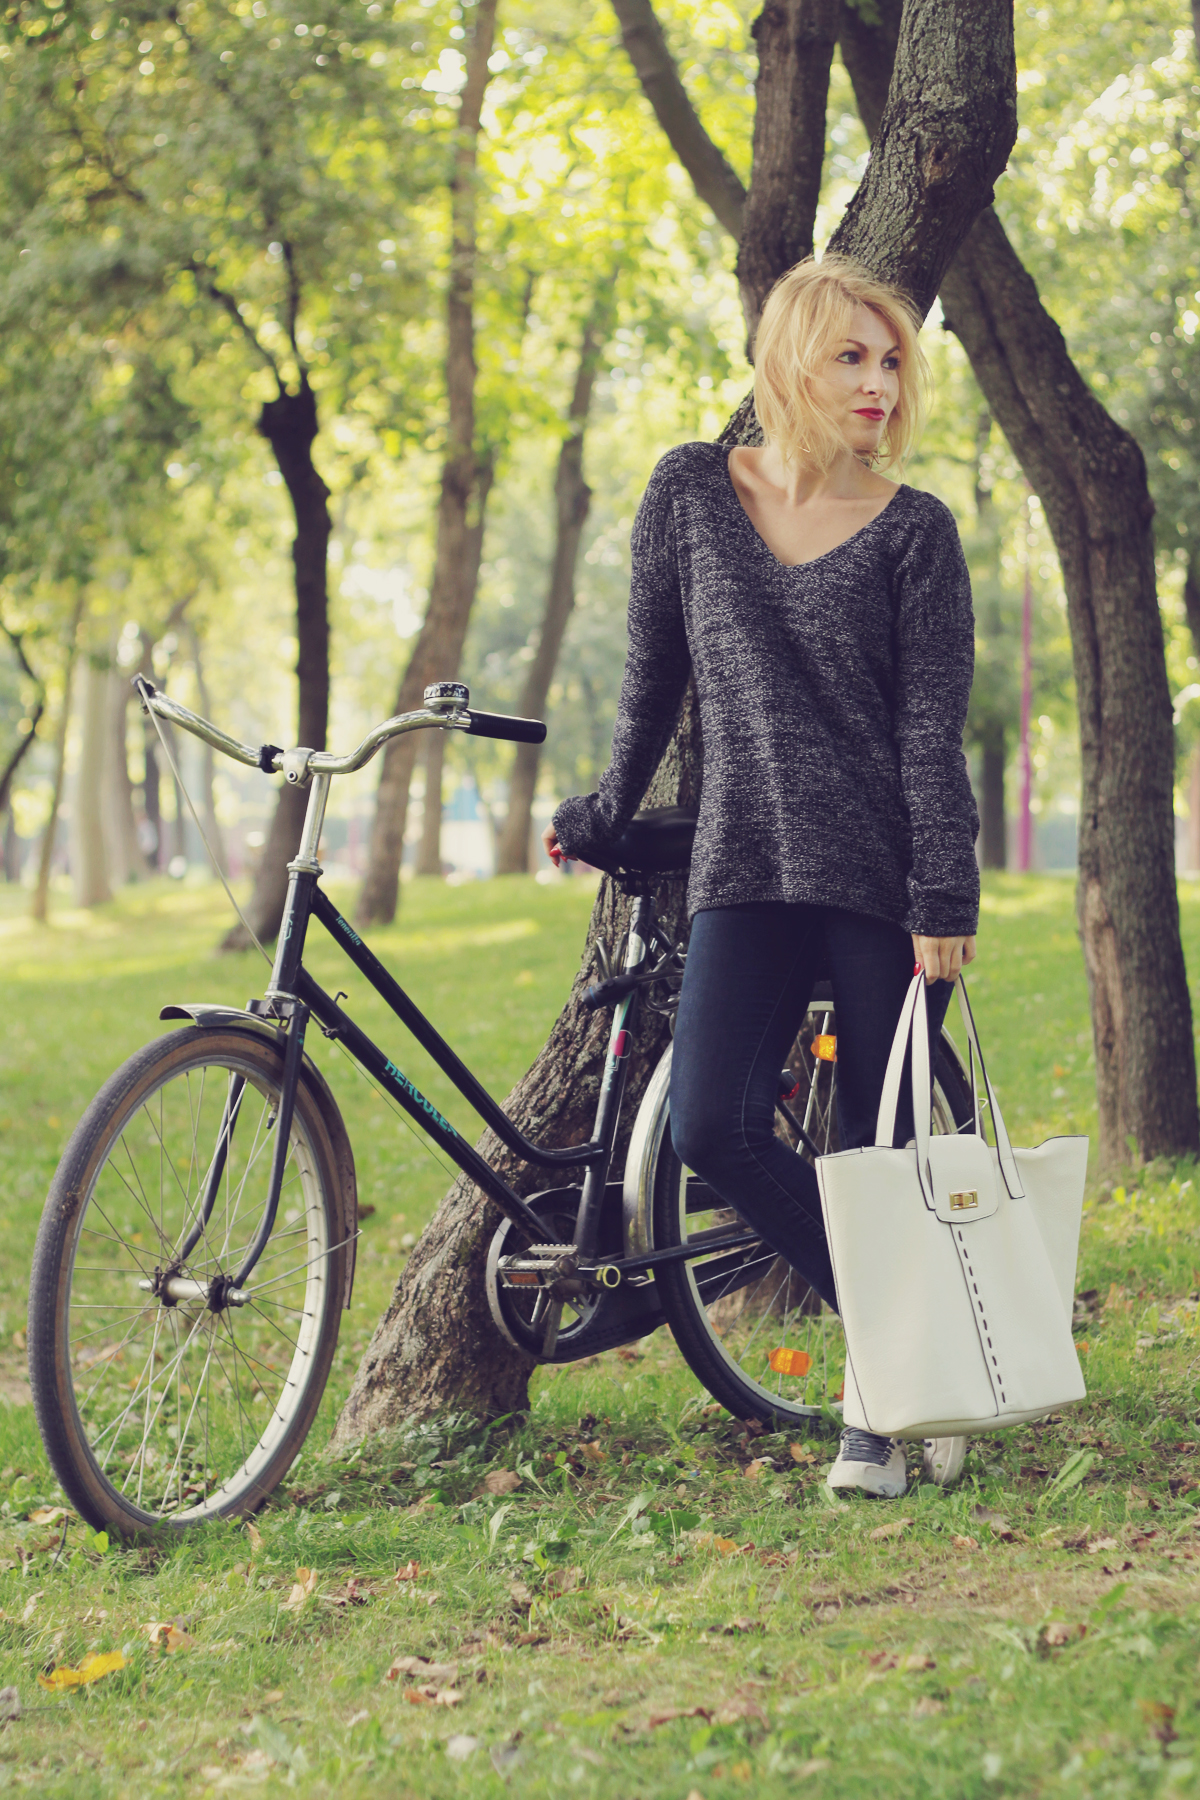 bike jeans and large white bag